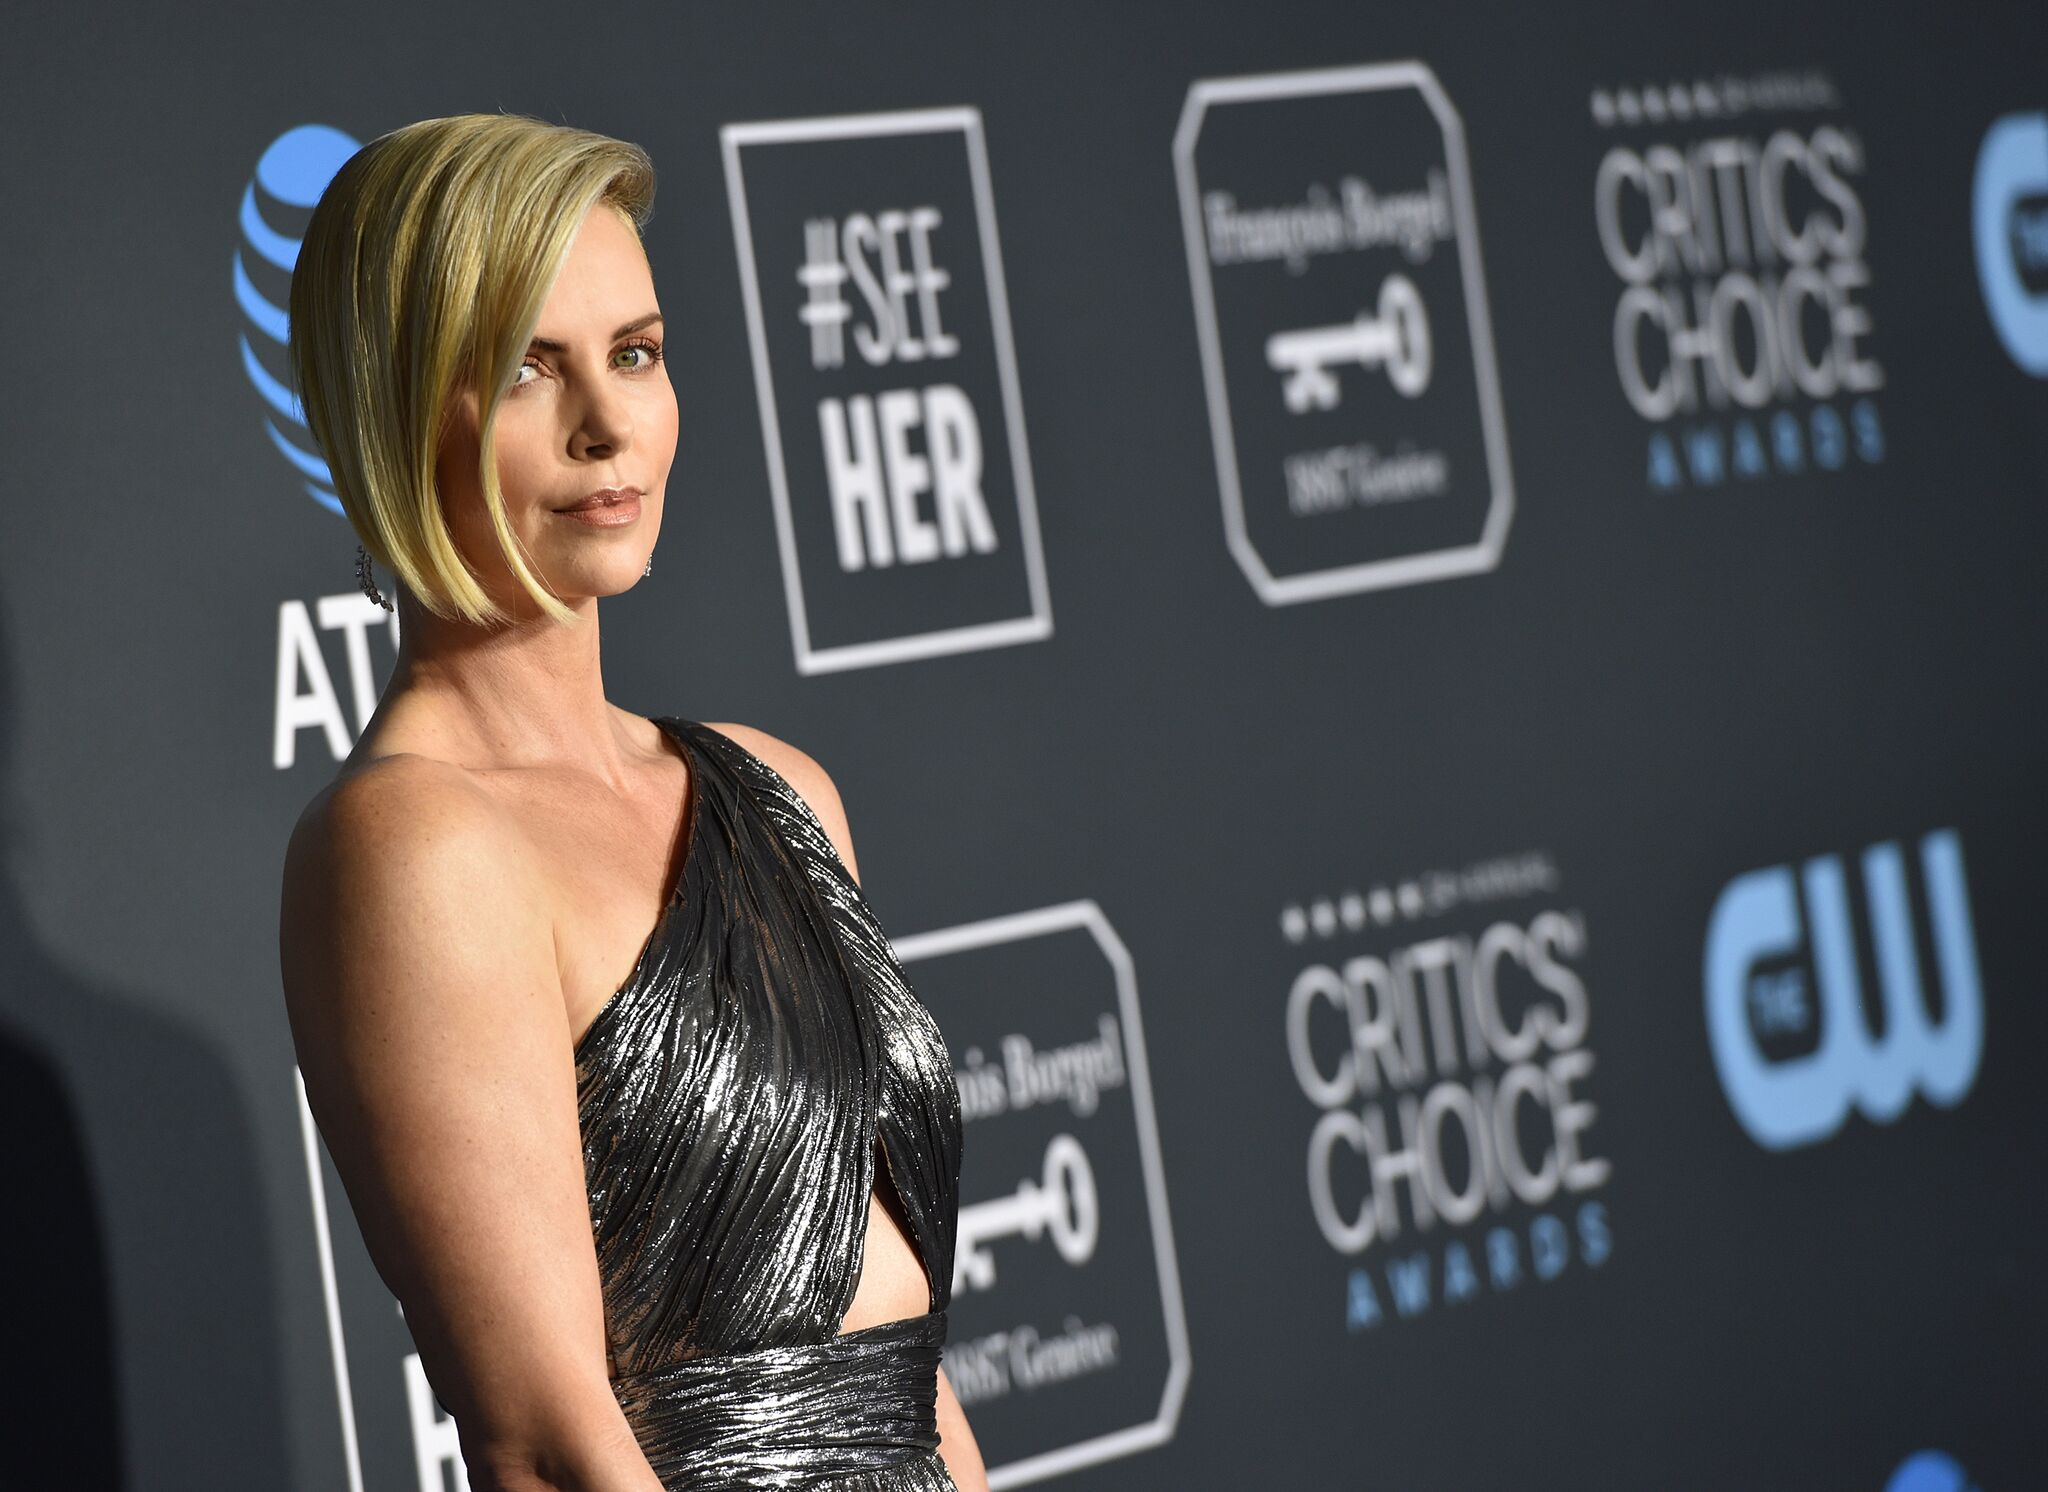 Charlize Theron attends the 24th Annual Critics' Choice Awards at Barker Hangar | Getty Images